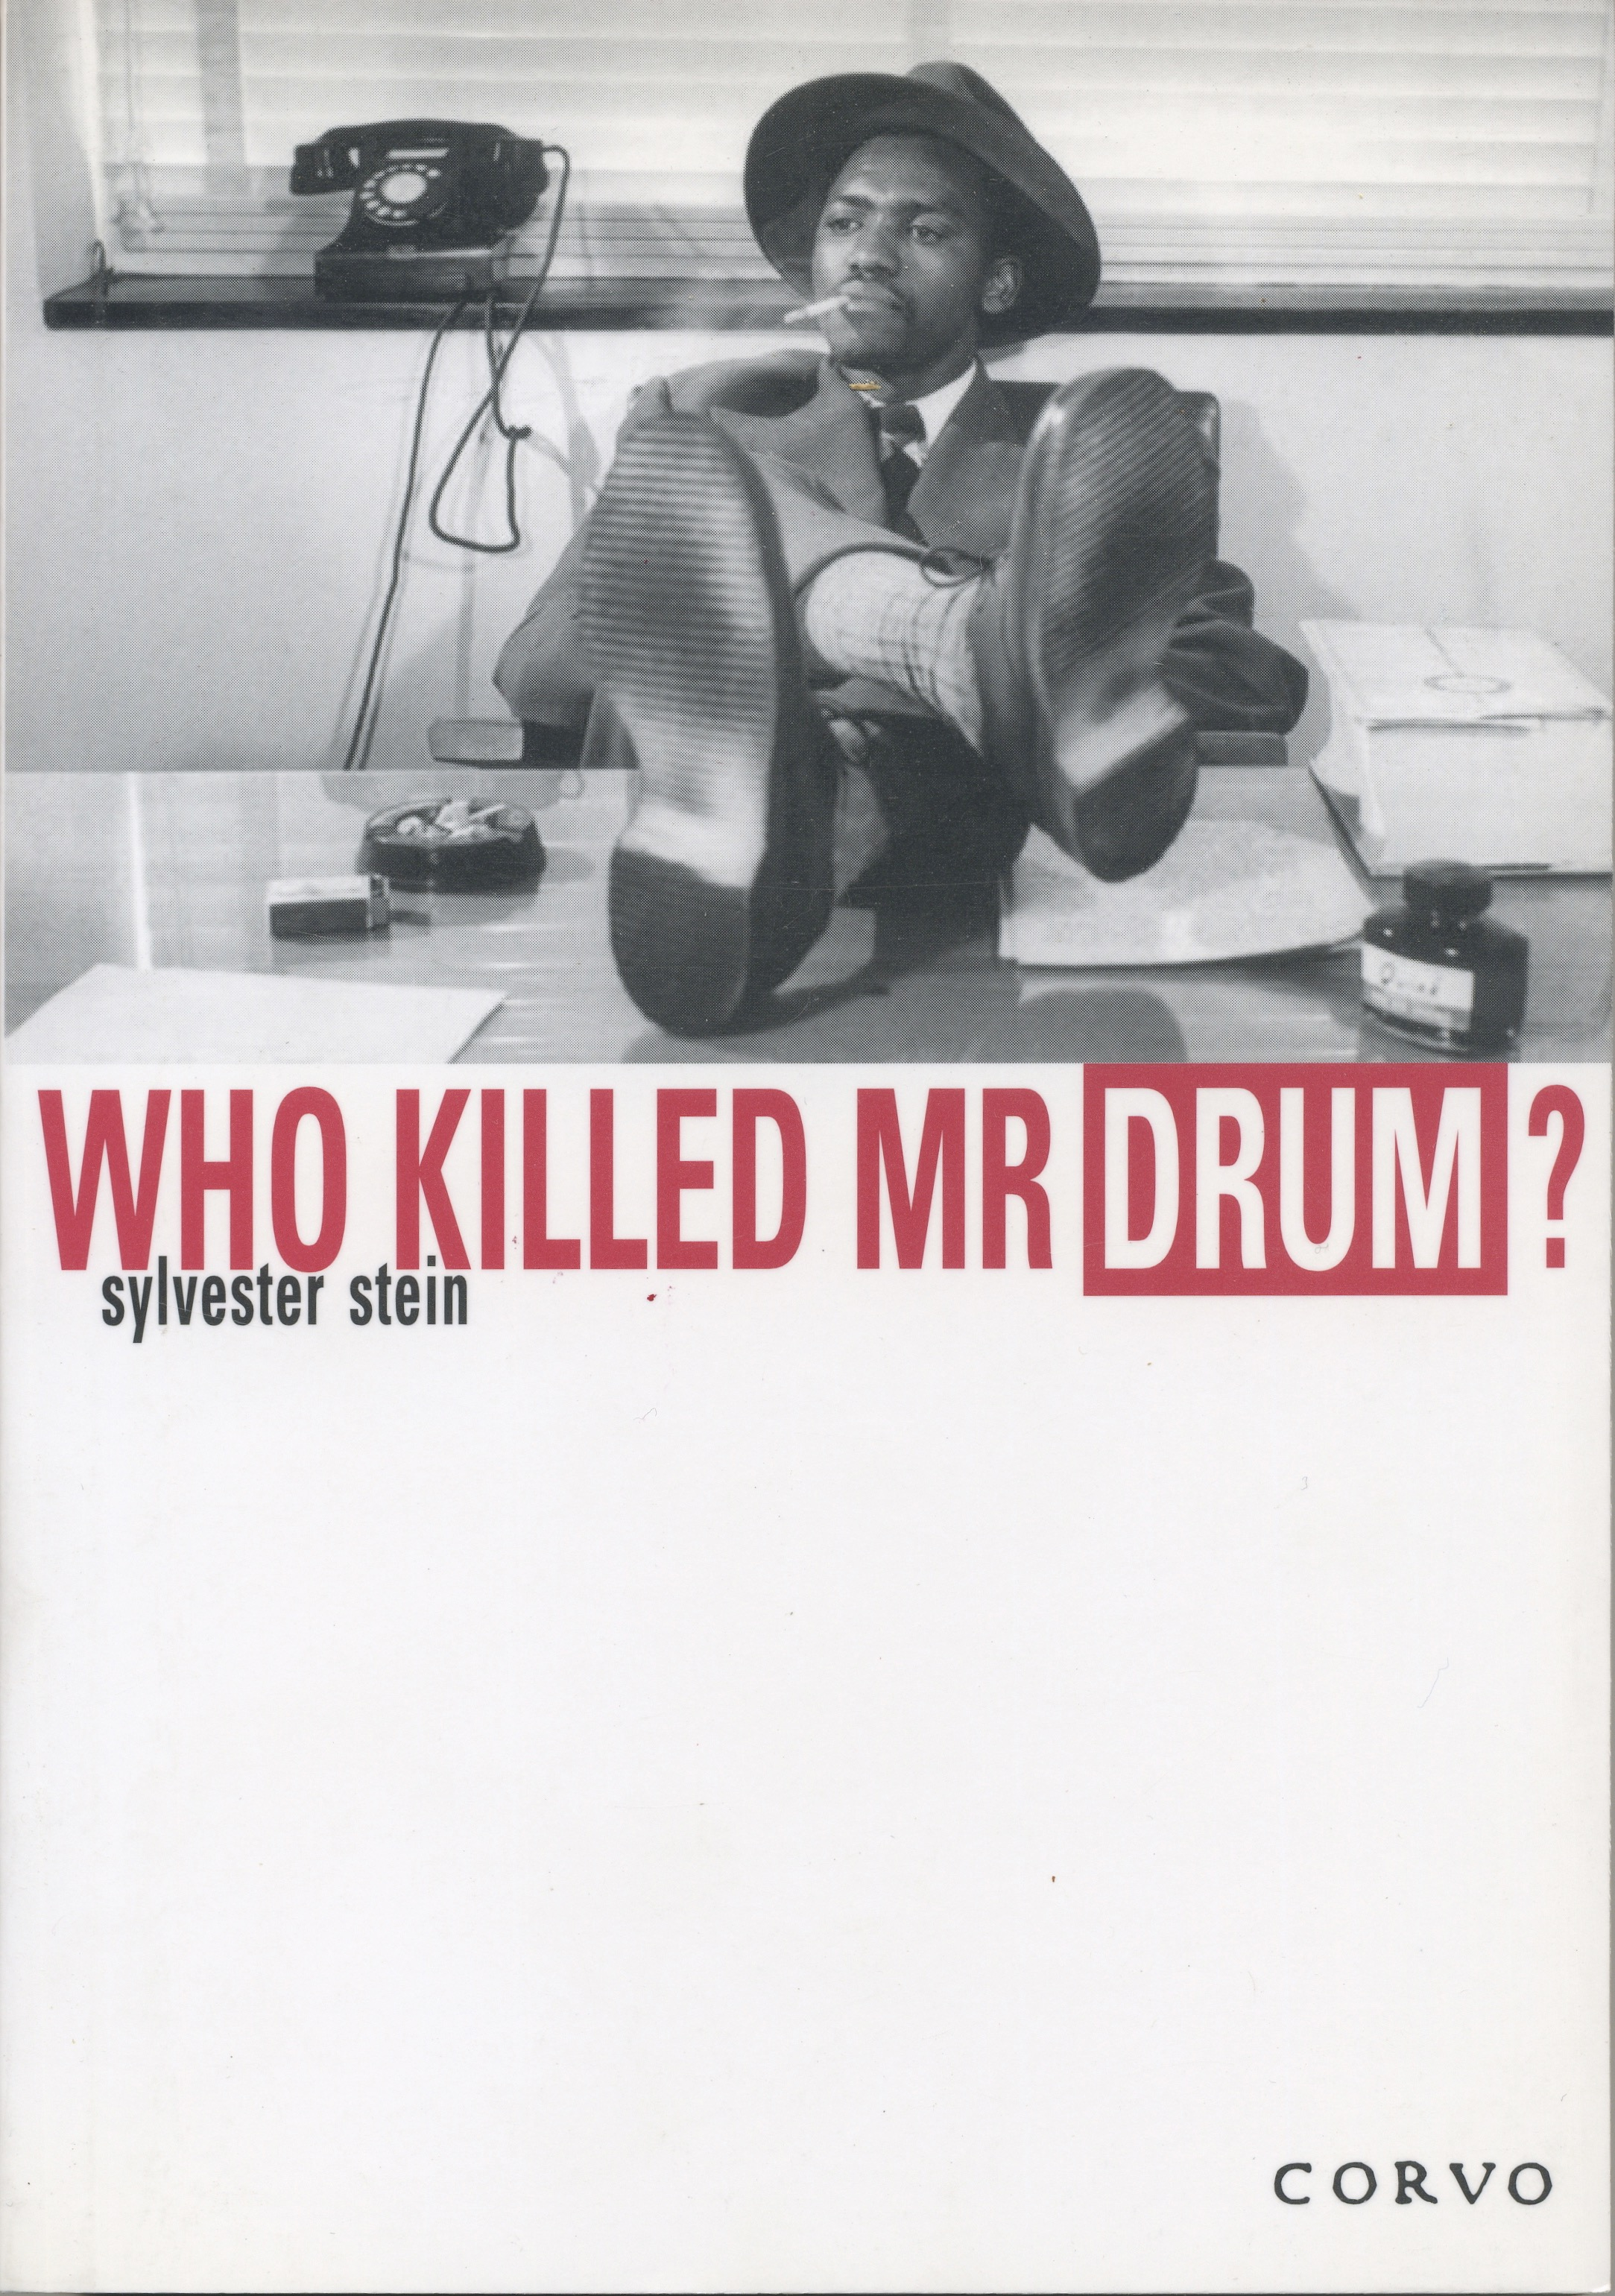 Who Killed Mr Drum? - Part biography, part murder-mystery, with gems about Nelson Mandela, Joe Slovo and other lions of the apartheid era, this book is about the author's time as editor of the legendary township magazine, Drum, and the untimely deaths of the brilliant black journalists, Can Themba, Henry Nxumalo, Zeke Mphalele, among many others.